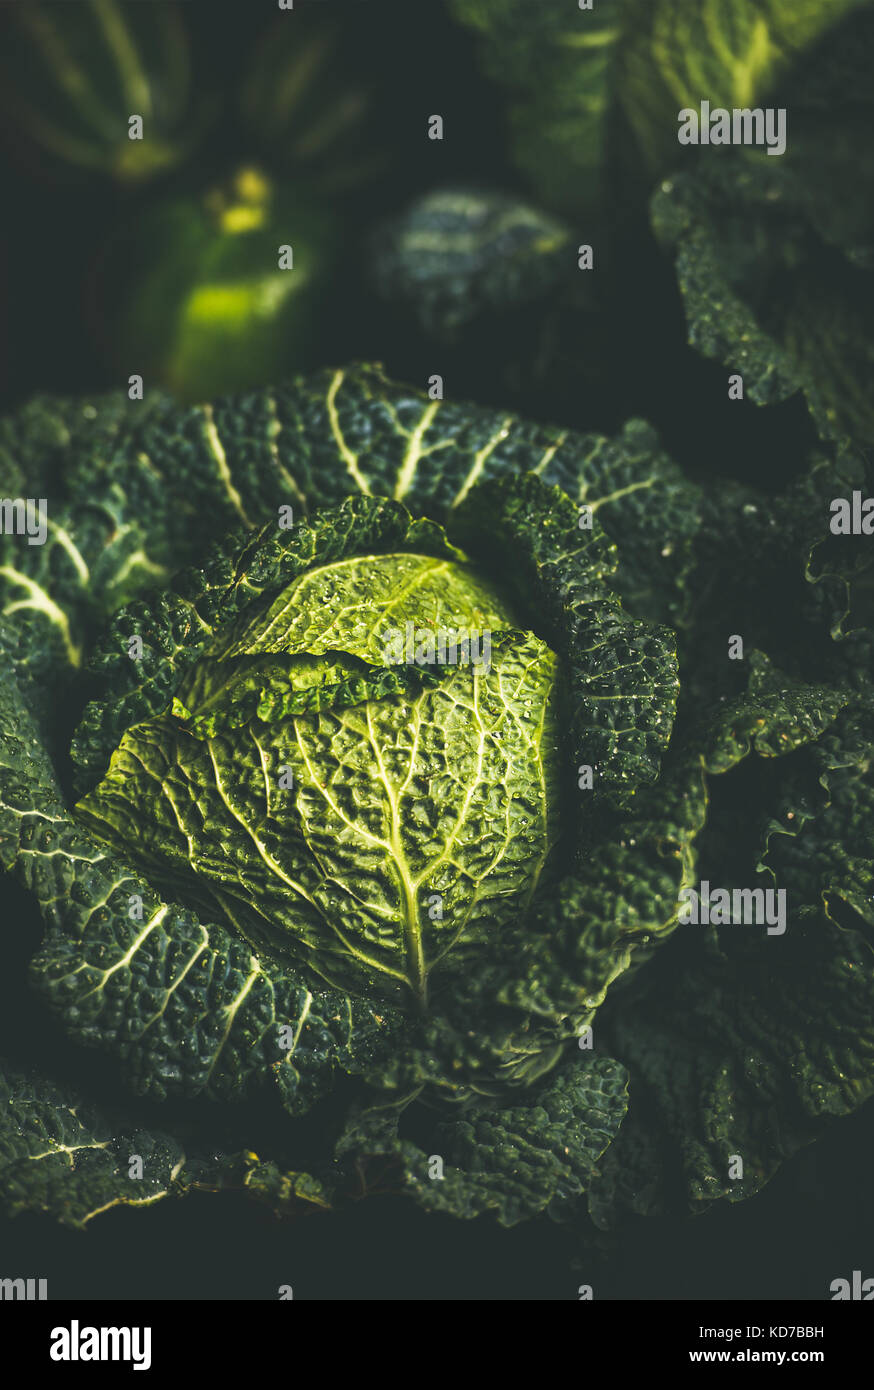 Close-up of raw fresh green cabbage texture and background - Stock Image